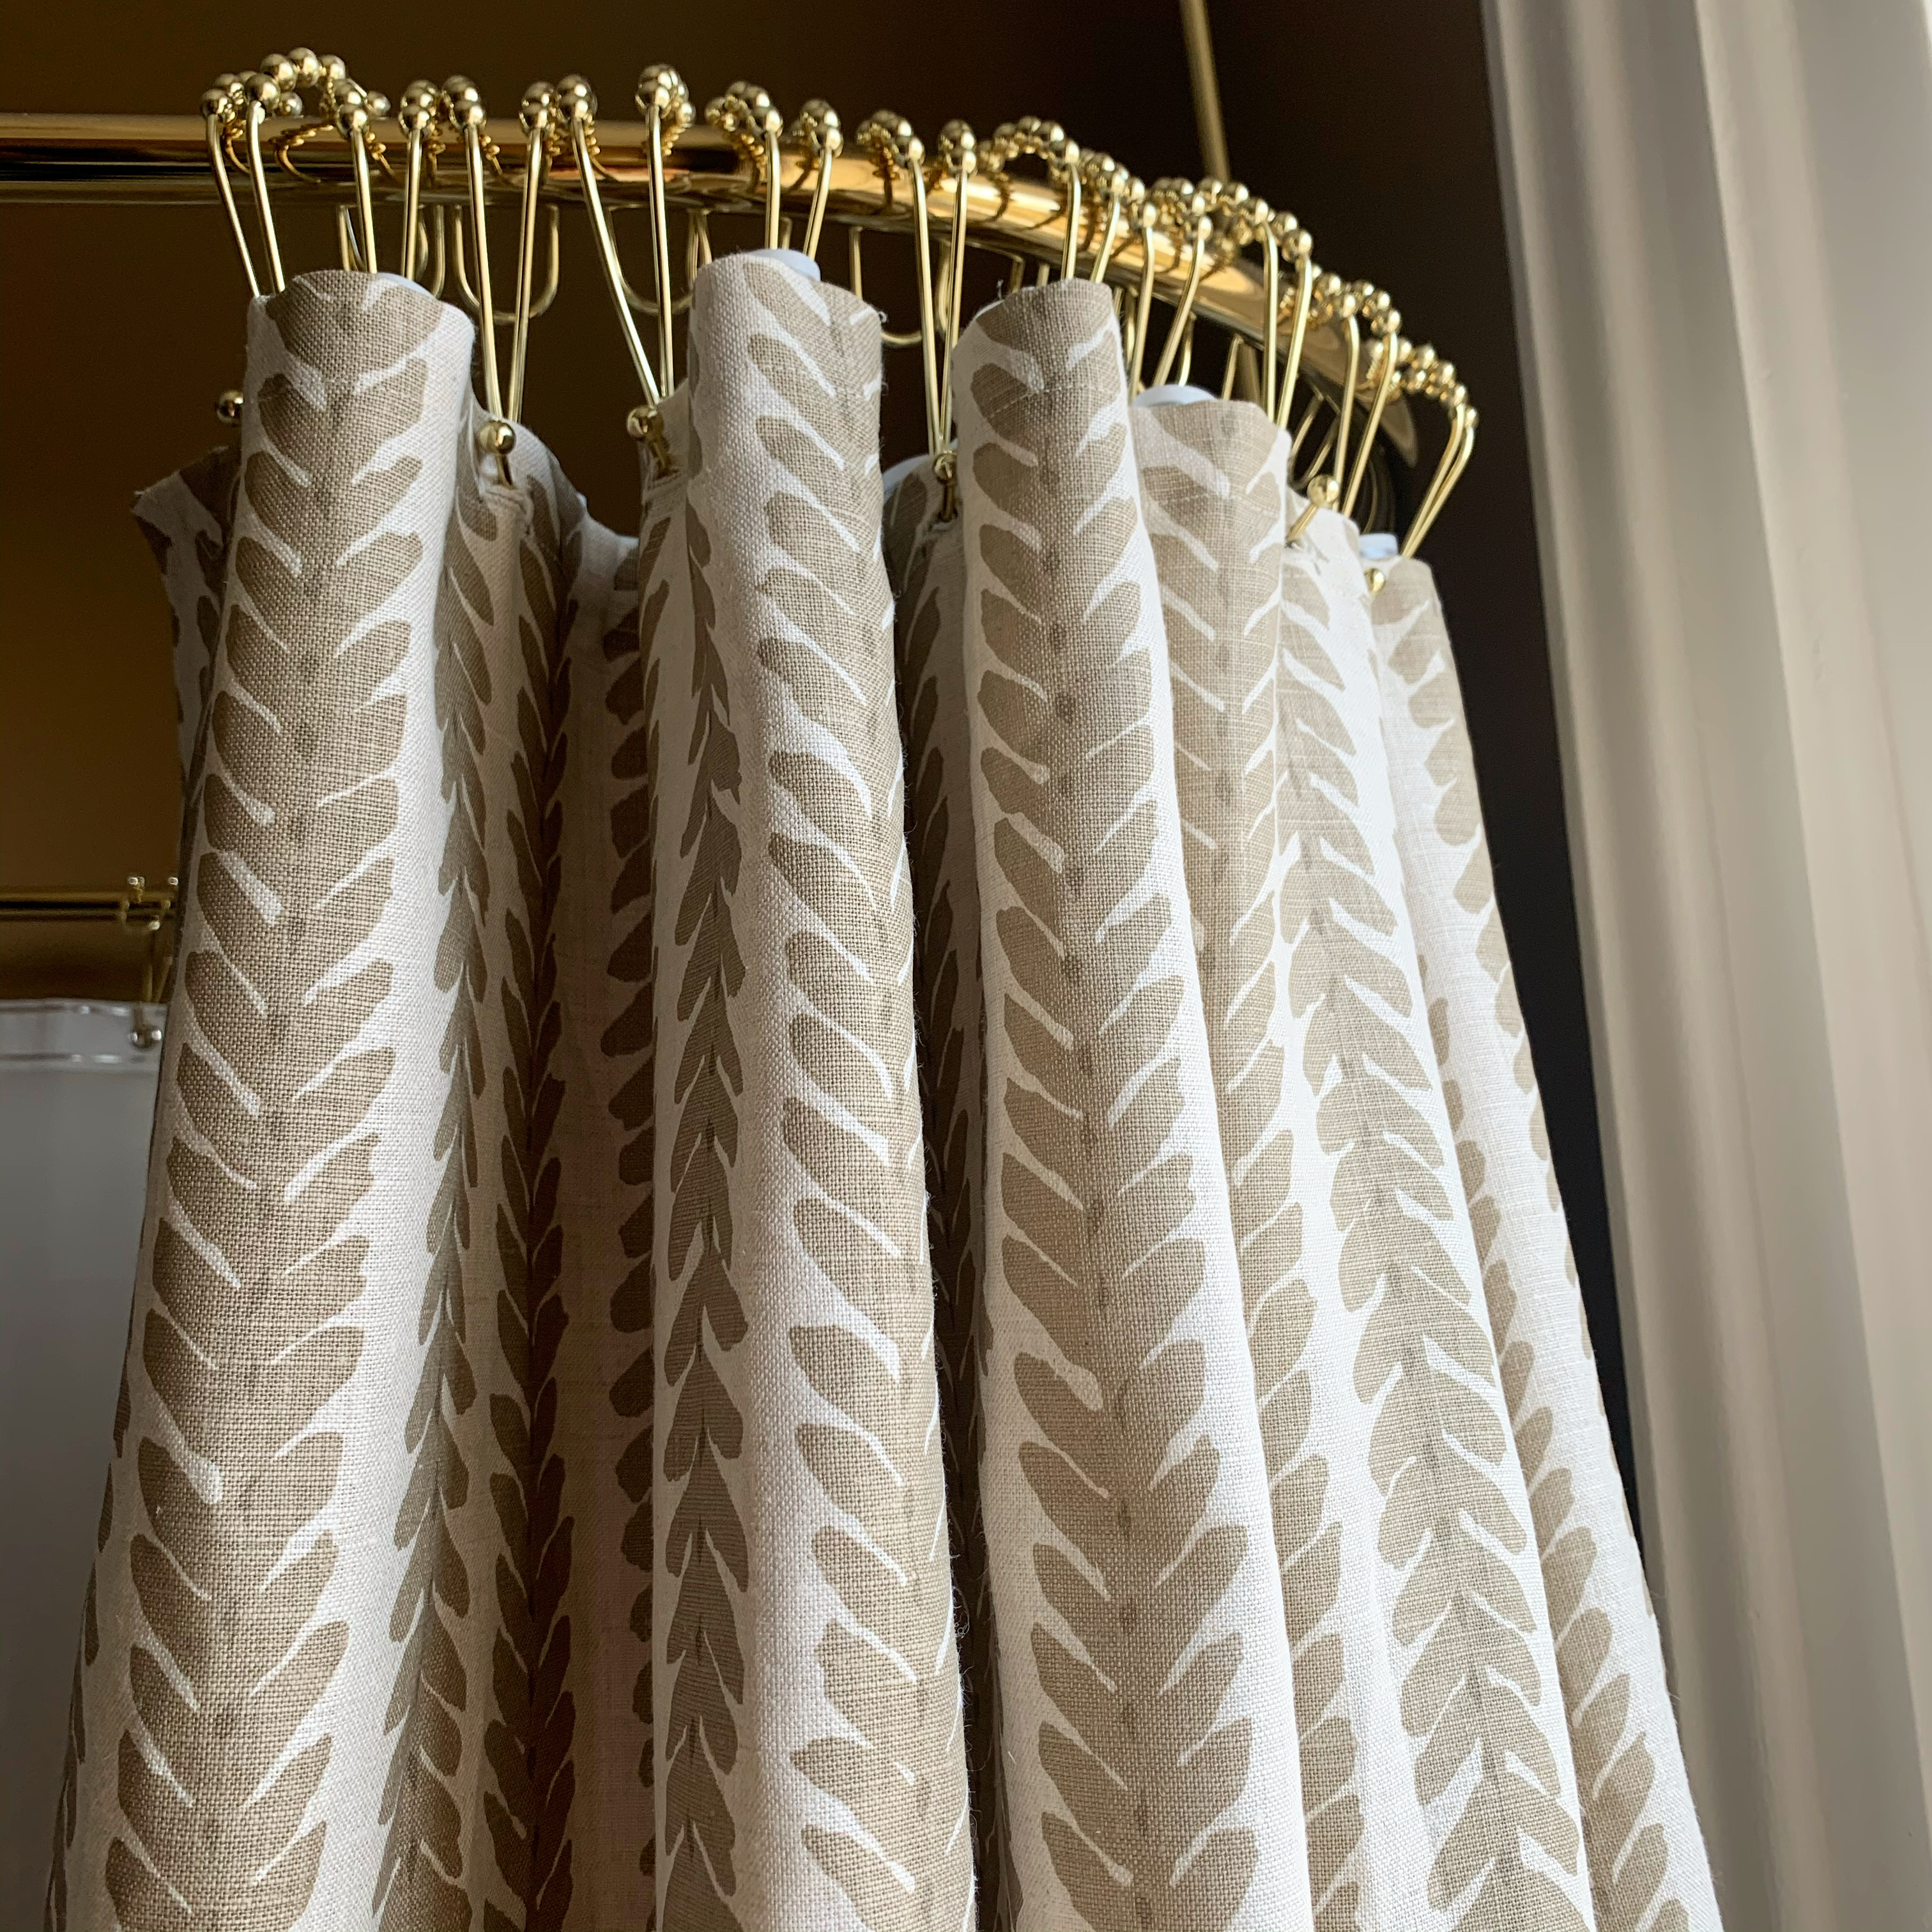 image of finished curtain